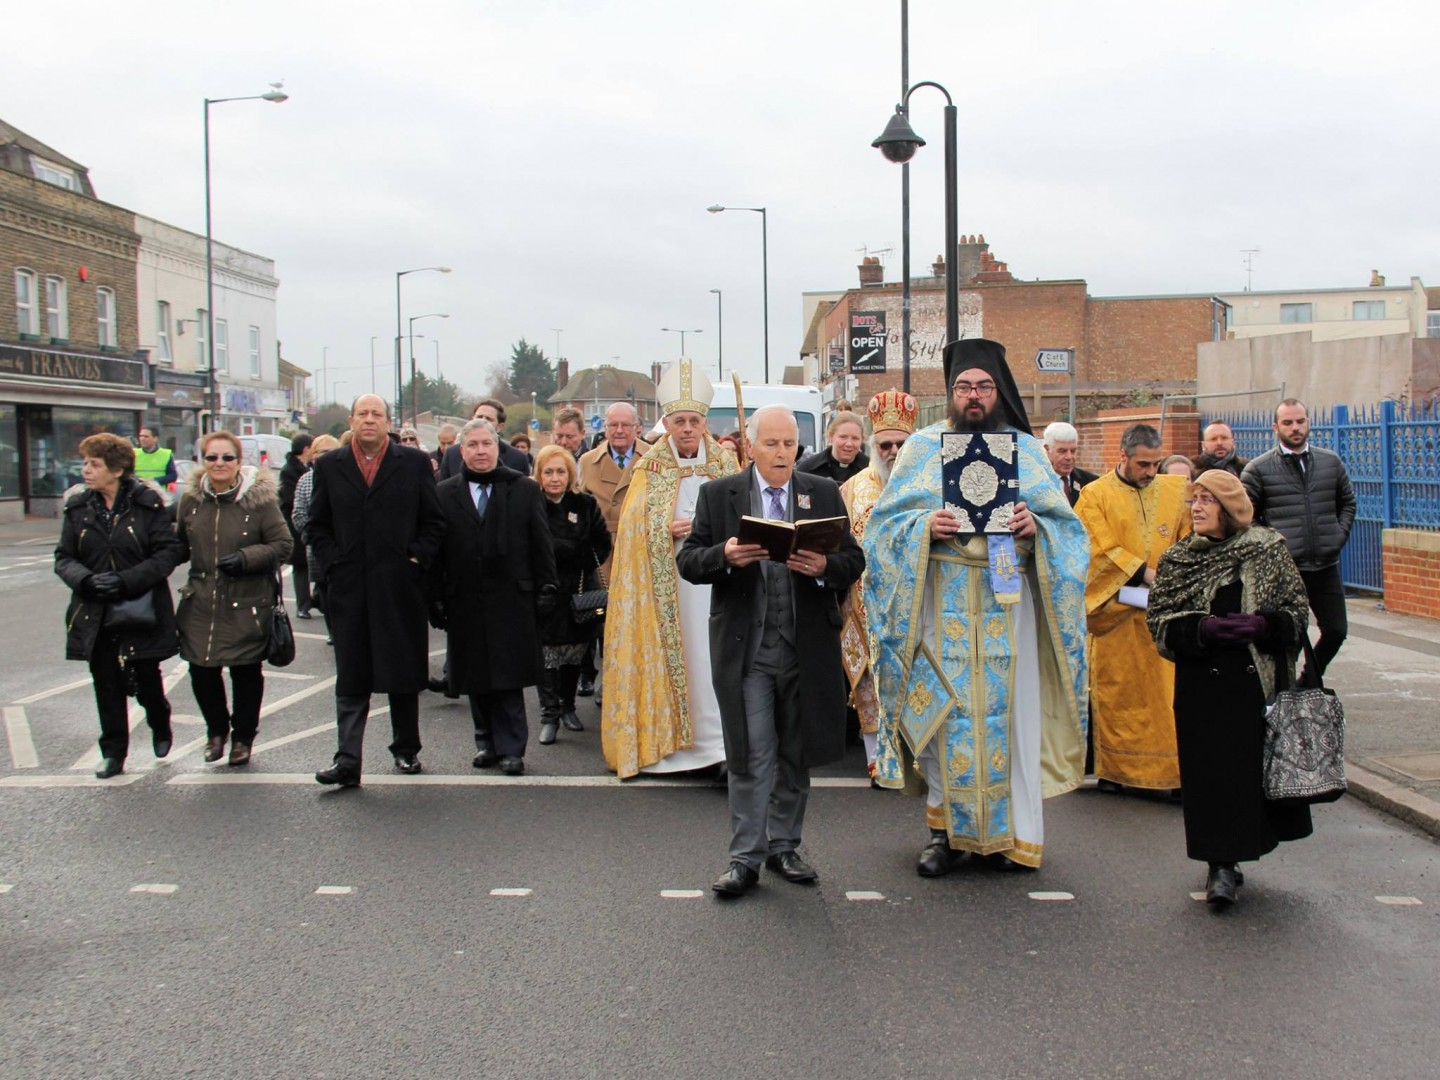 Margate blessing of the seas 01 12.01.2017